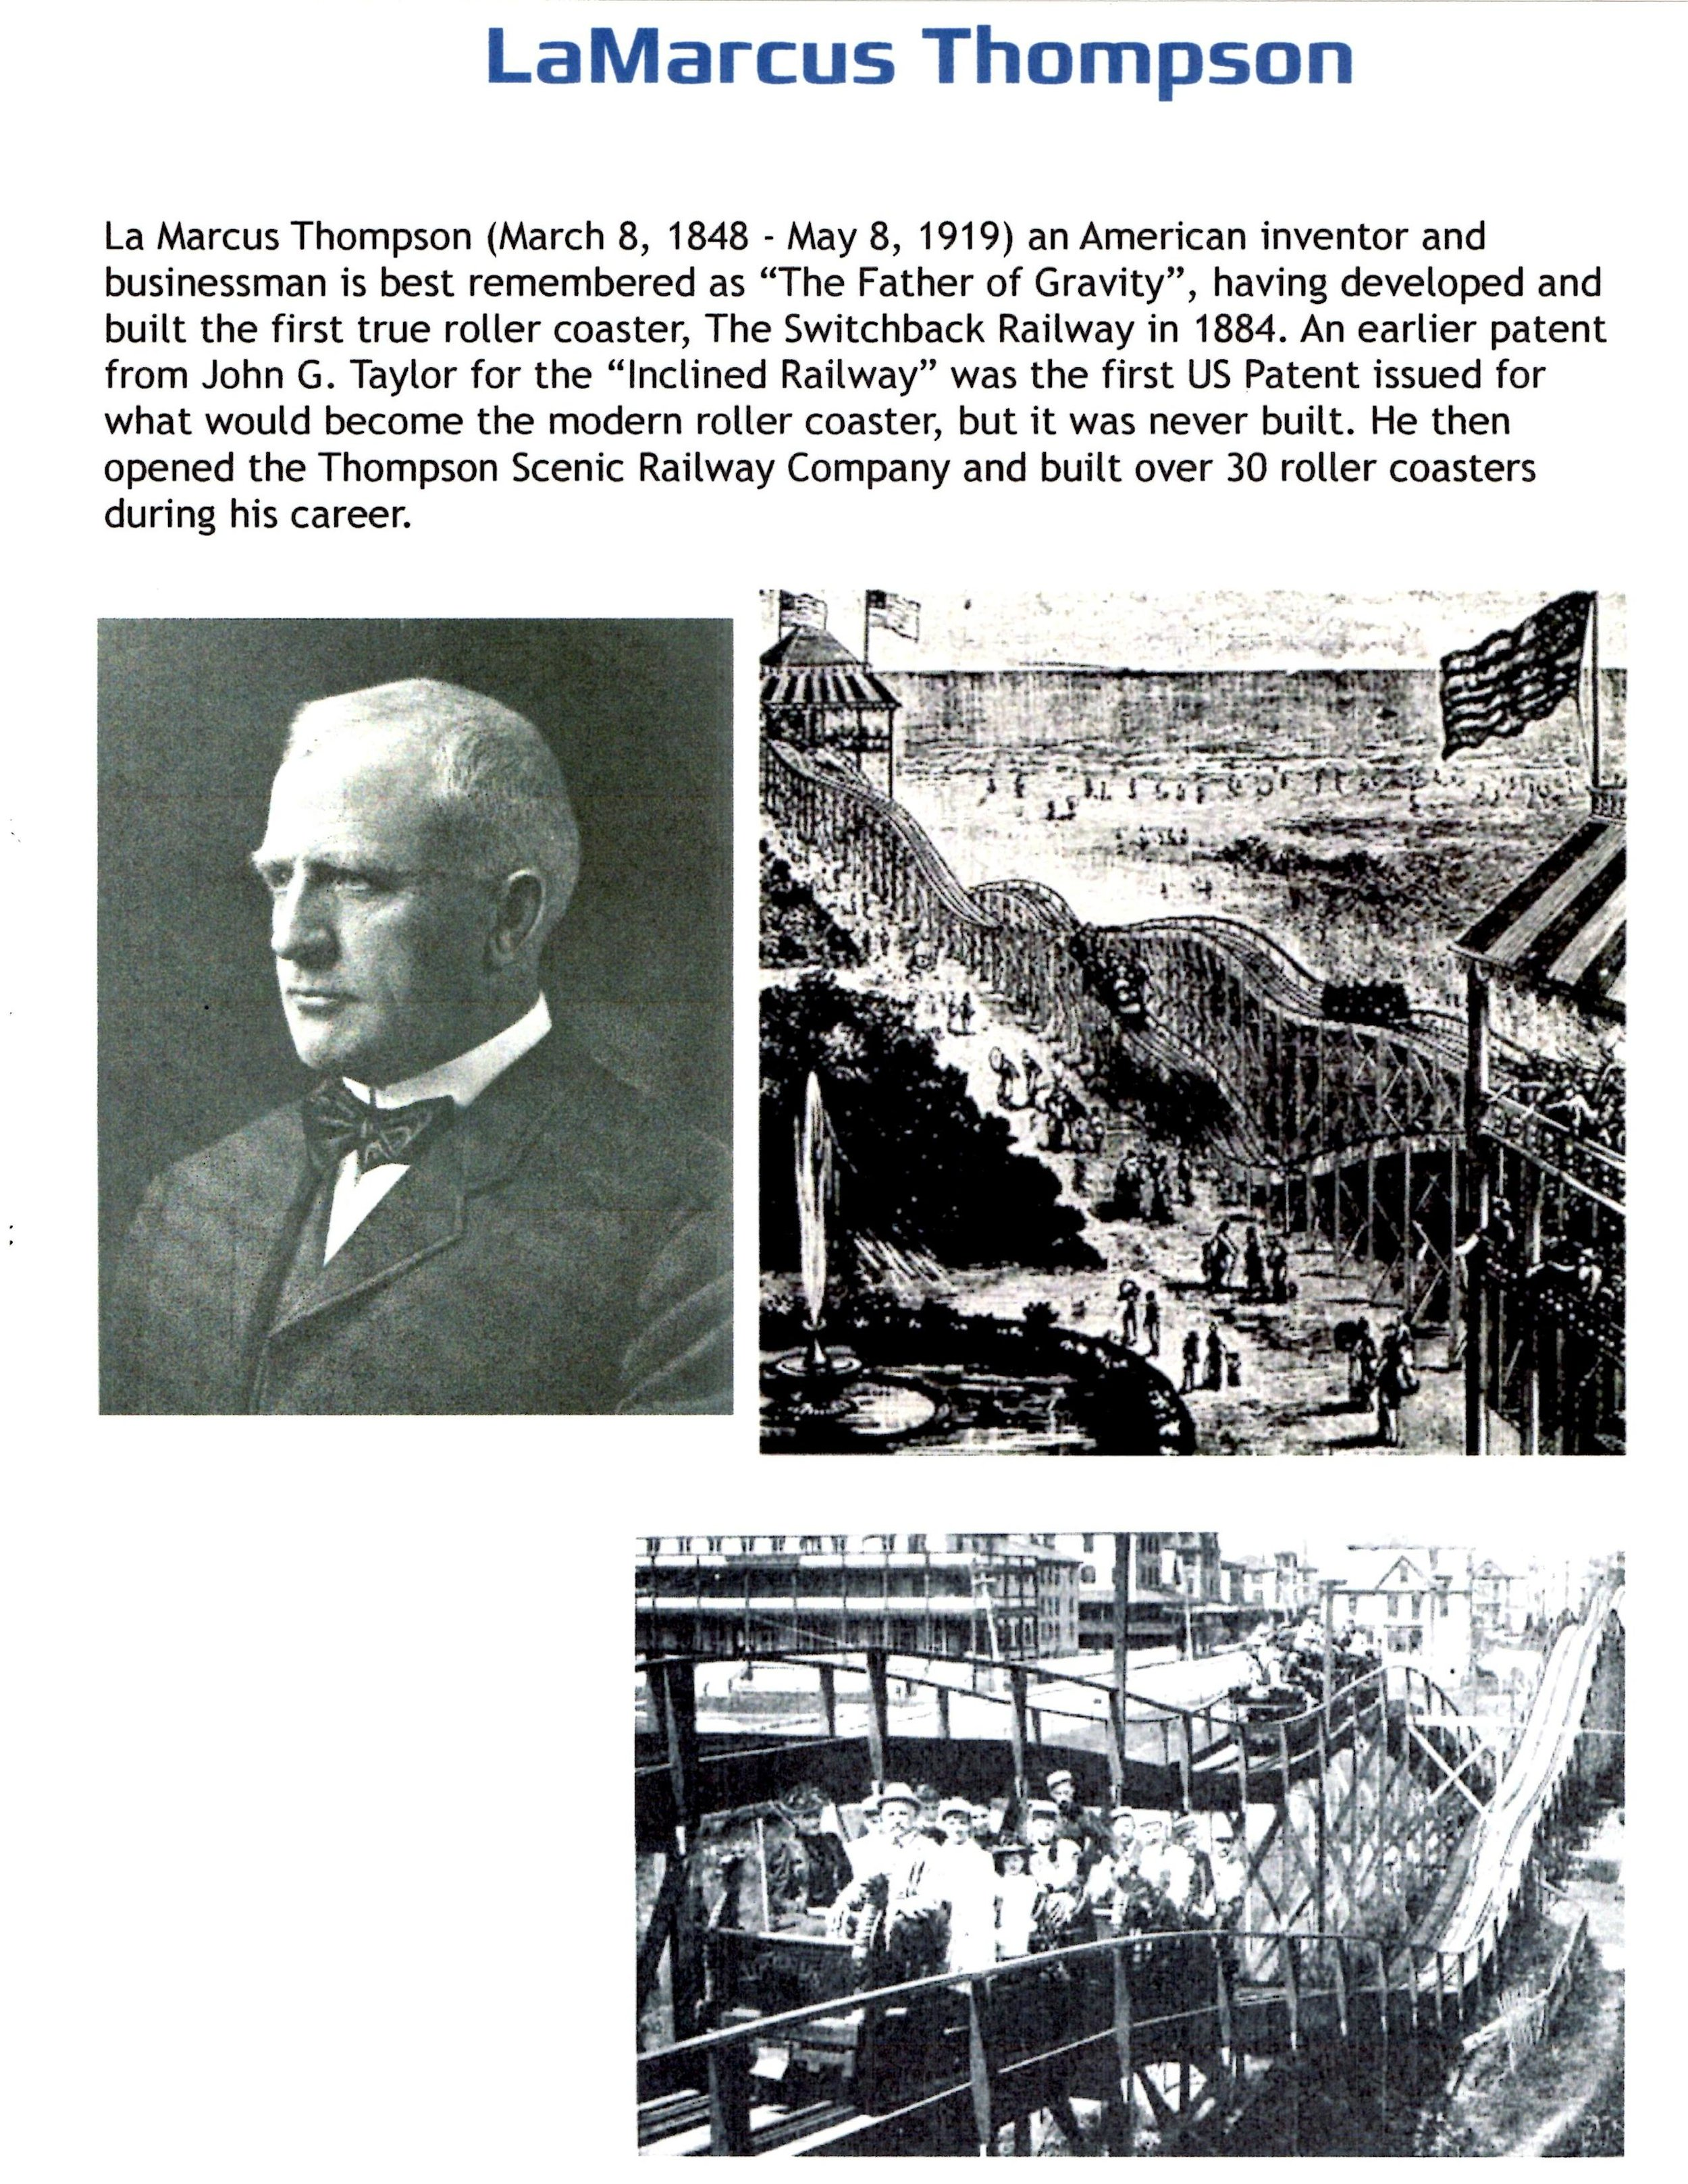 Exhibit: Early Roller Coasters - LaMarcus Thompson and the Swithback Railway